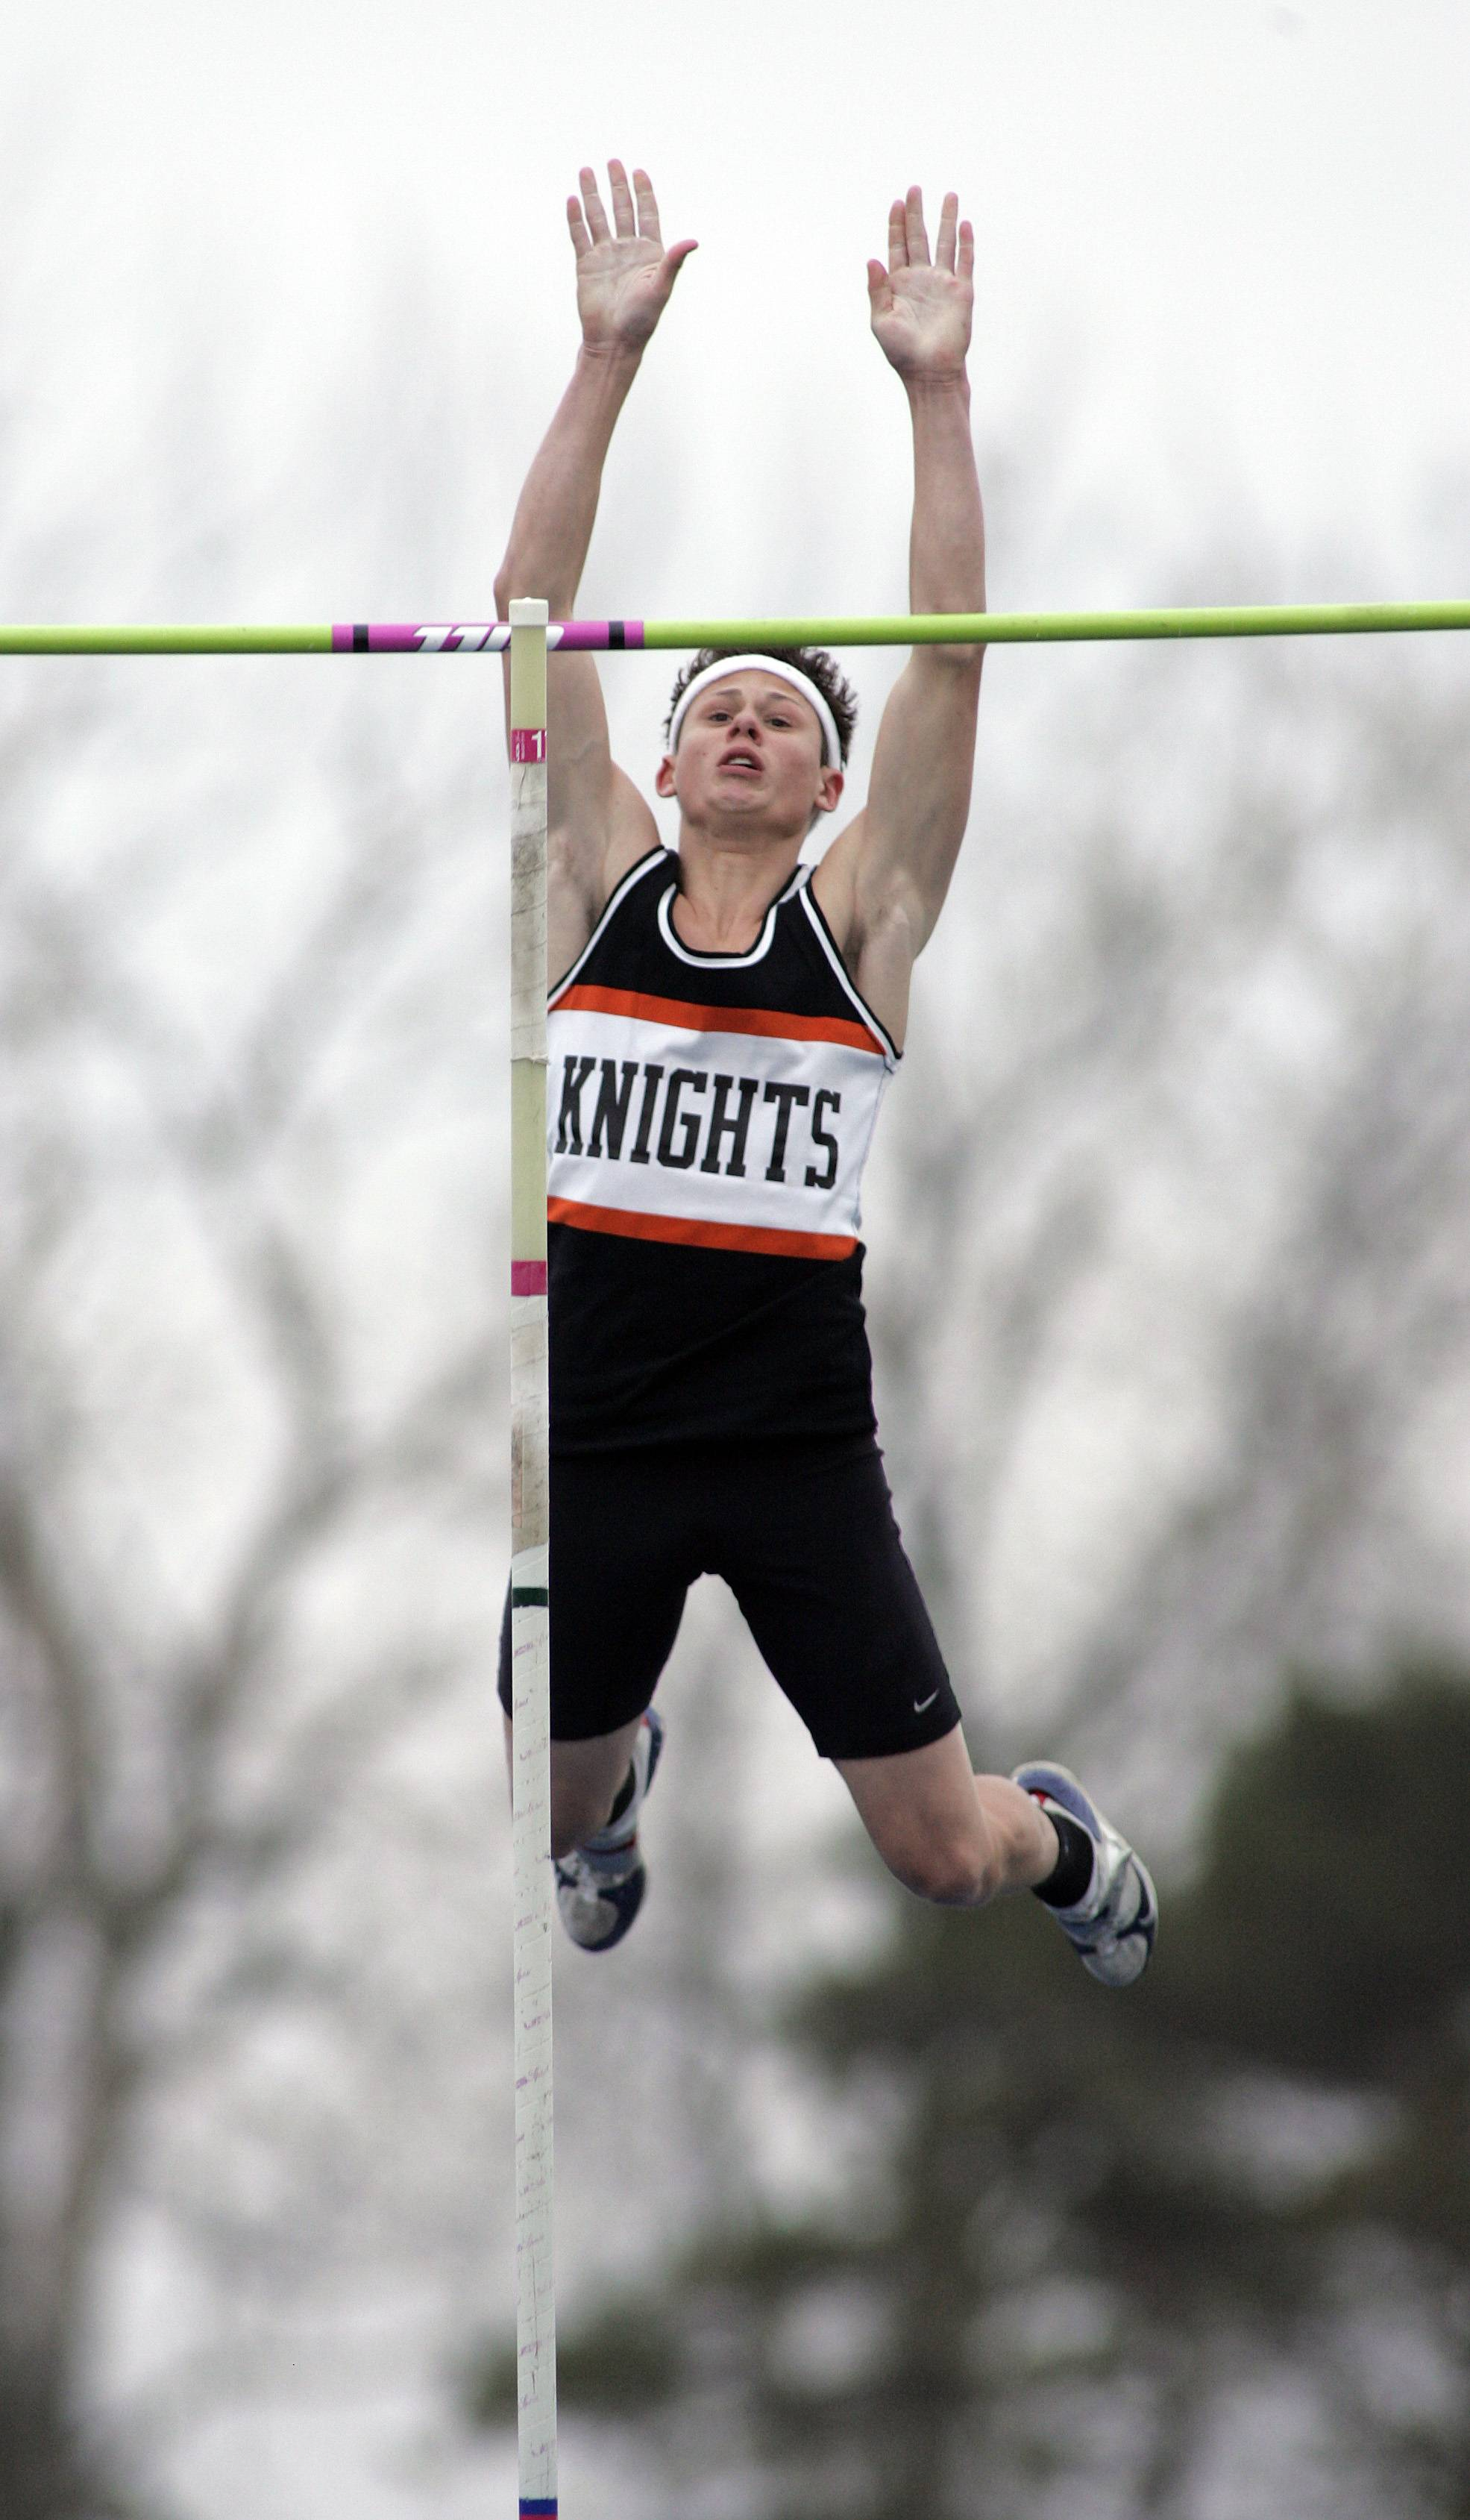 Dylan Kuipers, above, helped keep Kaneland's 32-year streak of qualifying someone for the state pole vault.